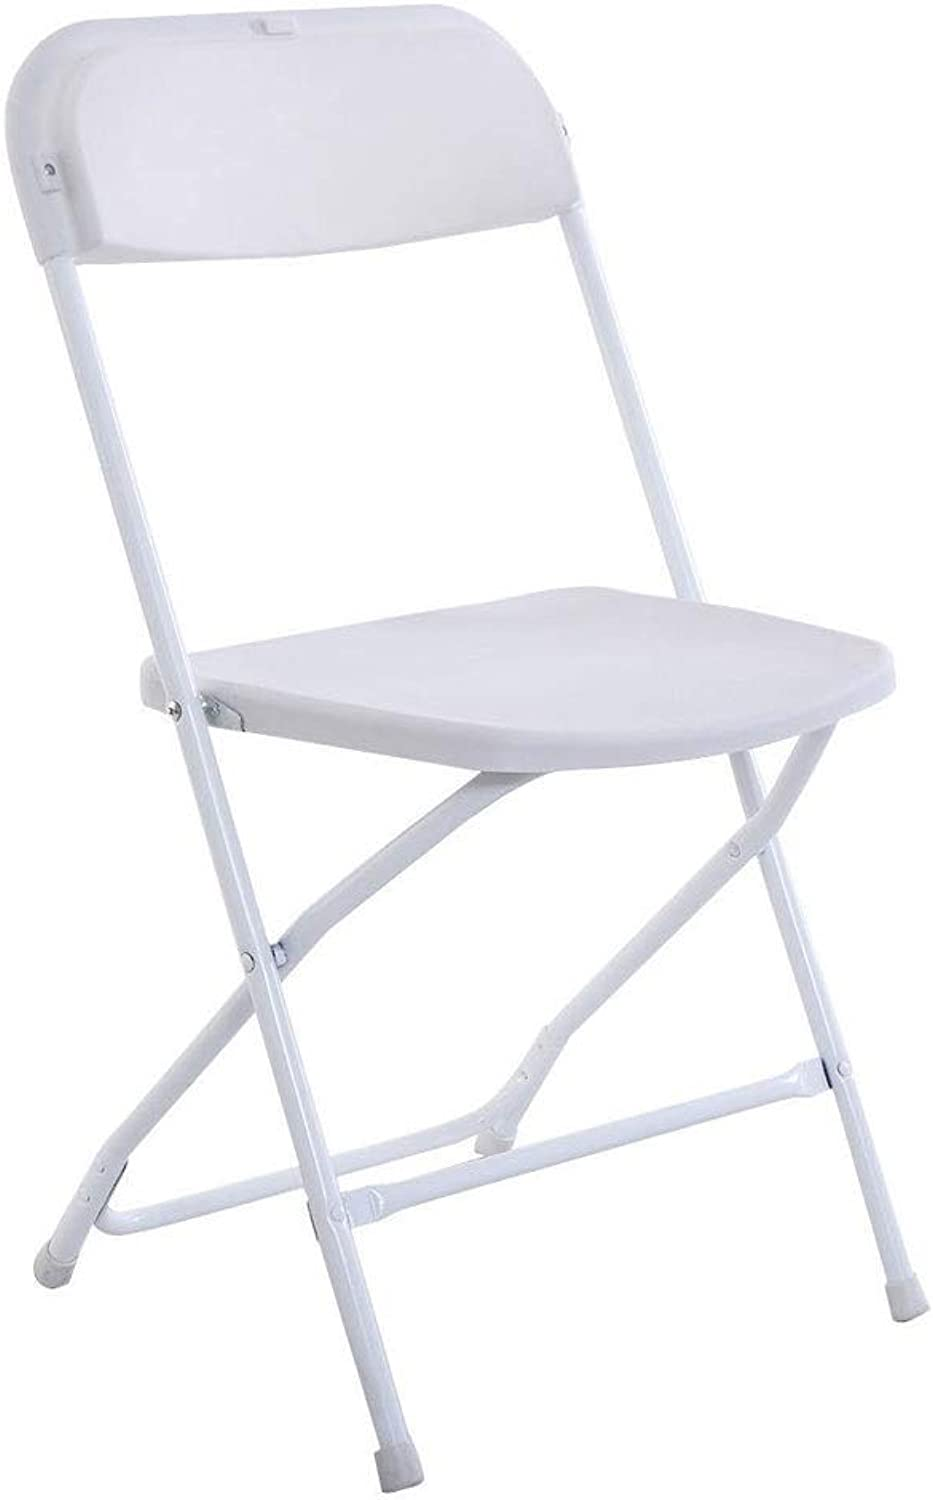 Paddia Plastic Folding Backrest Leisure Home Computer Office Staff Seat Comfortable Easy Carry Storage Camping Beach Foldable Chair Stackable White Chairs for Wedding Party Event